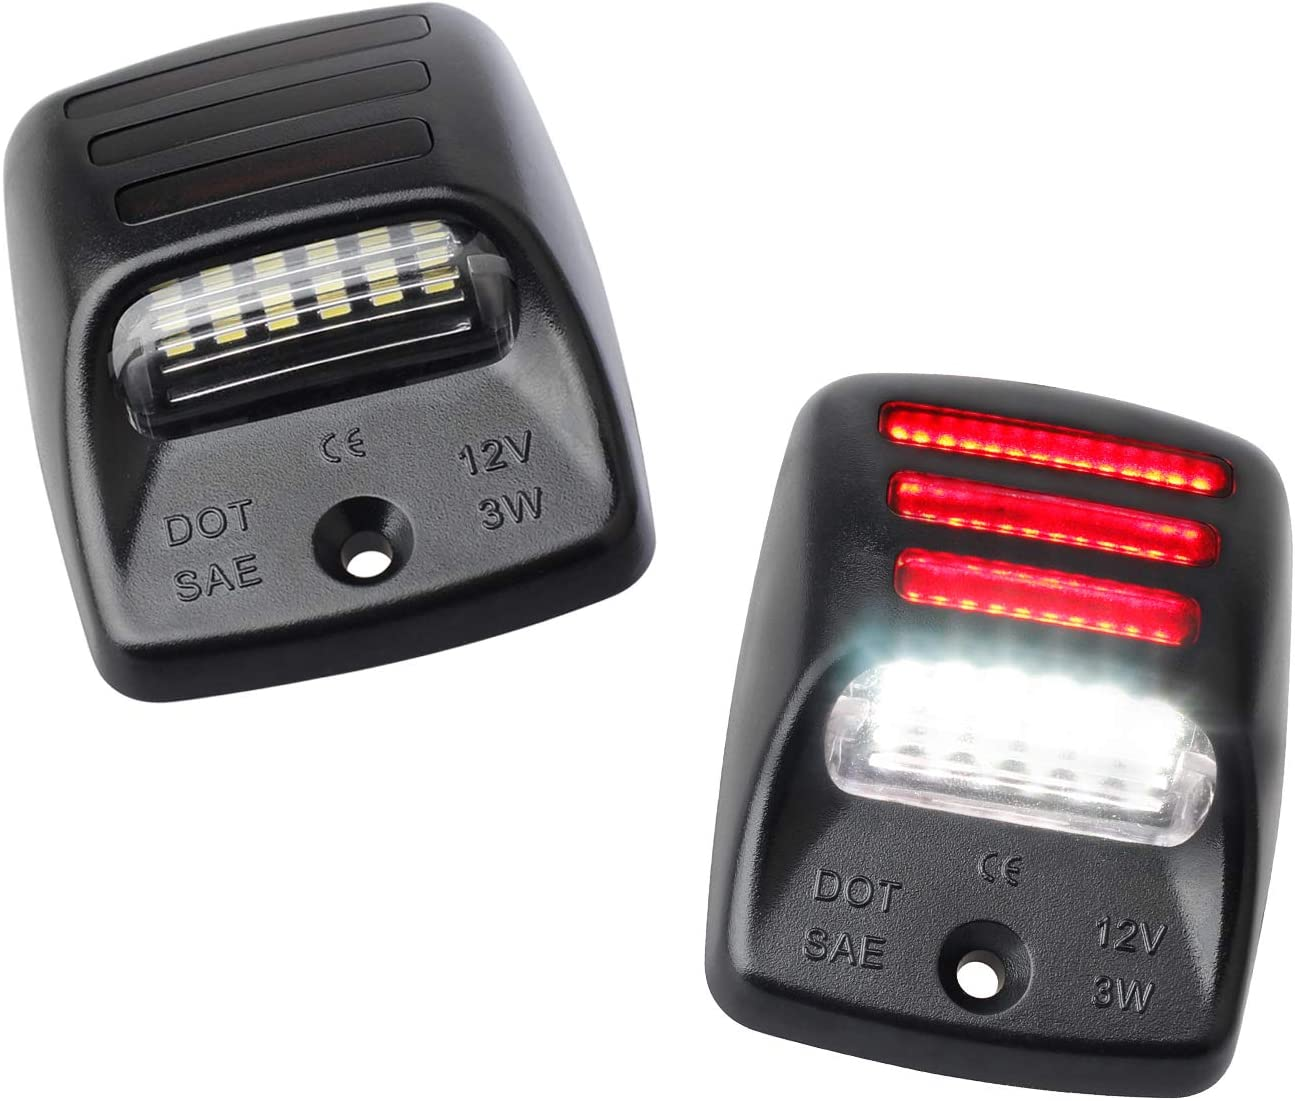 RUXIFEY LED License Plate Lights with Red OLED Neon Tube Compatible with Tacoma 2005 to 2015, Tundra 2000 to 2013